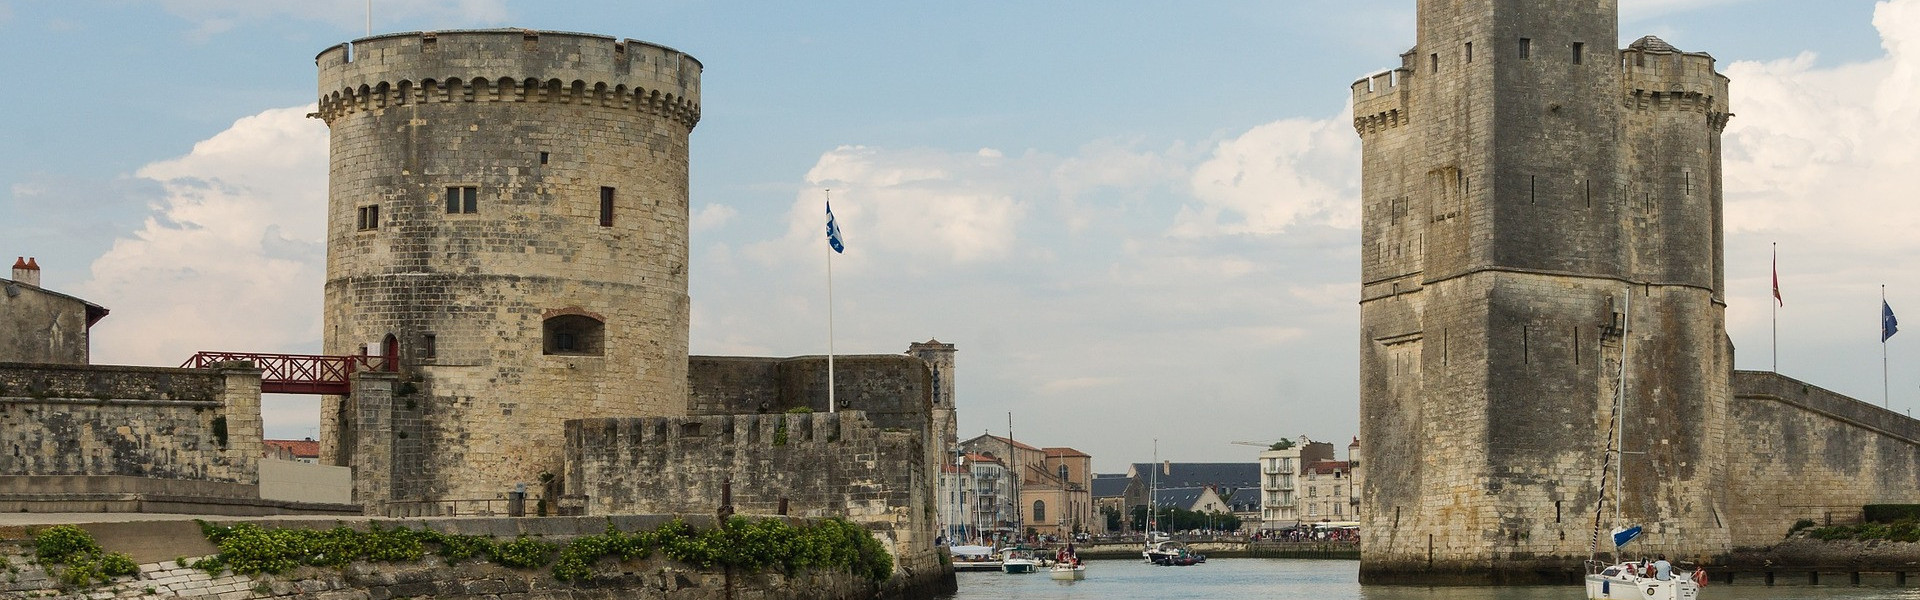 Destination image of La Rochelle